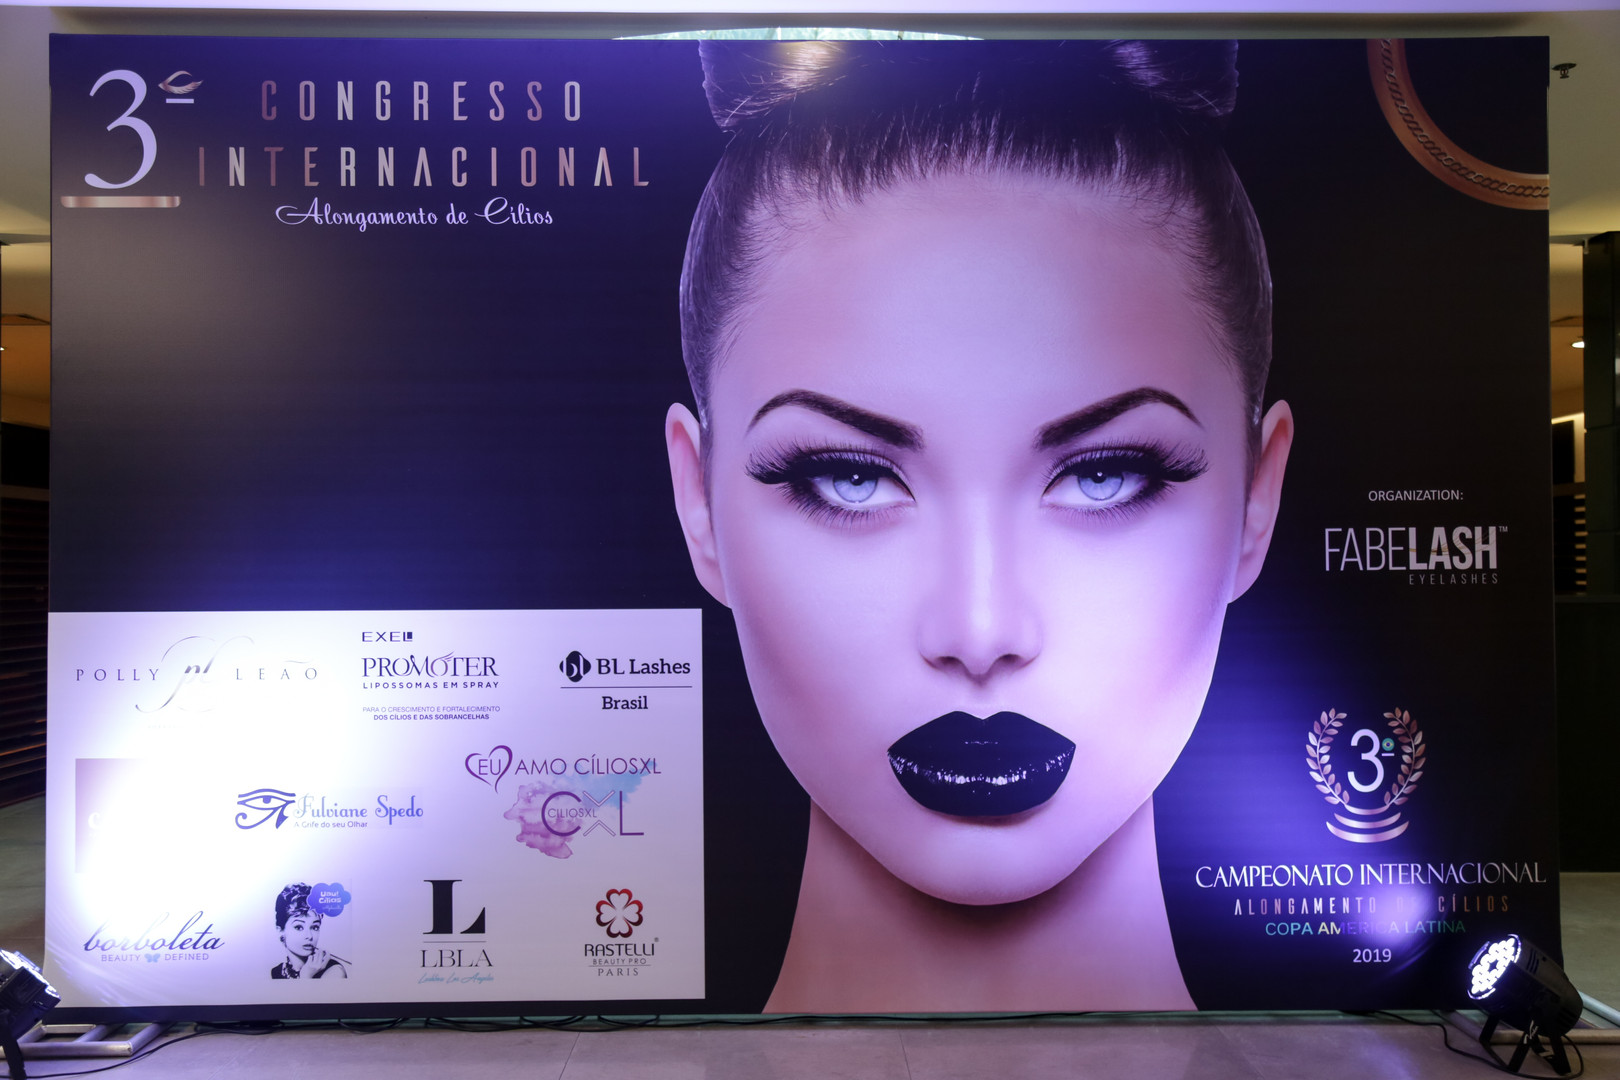 Fabelash Congress Brazil 2019